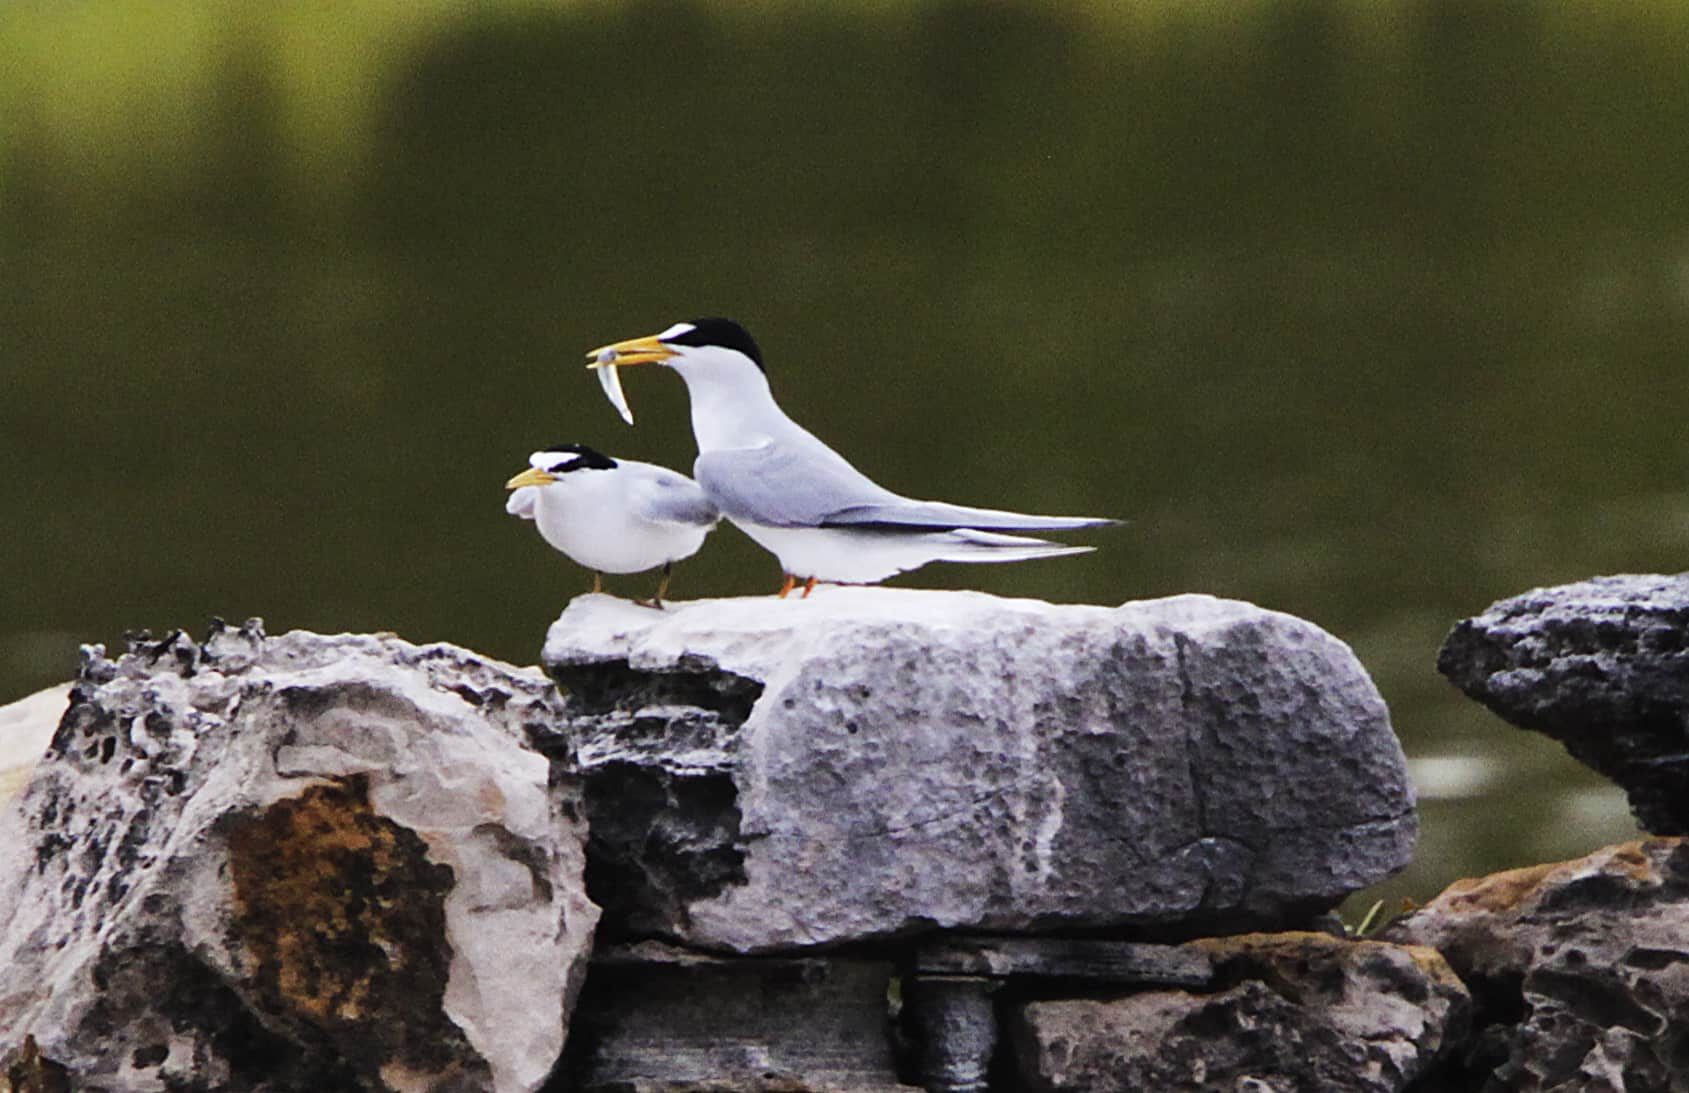 Male least tern brings fish for his mate as part of the display and help to egg production. Copyright: Dr Mike Pienkowski